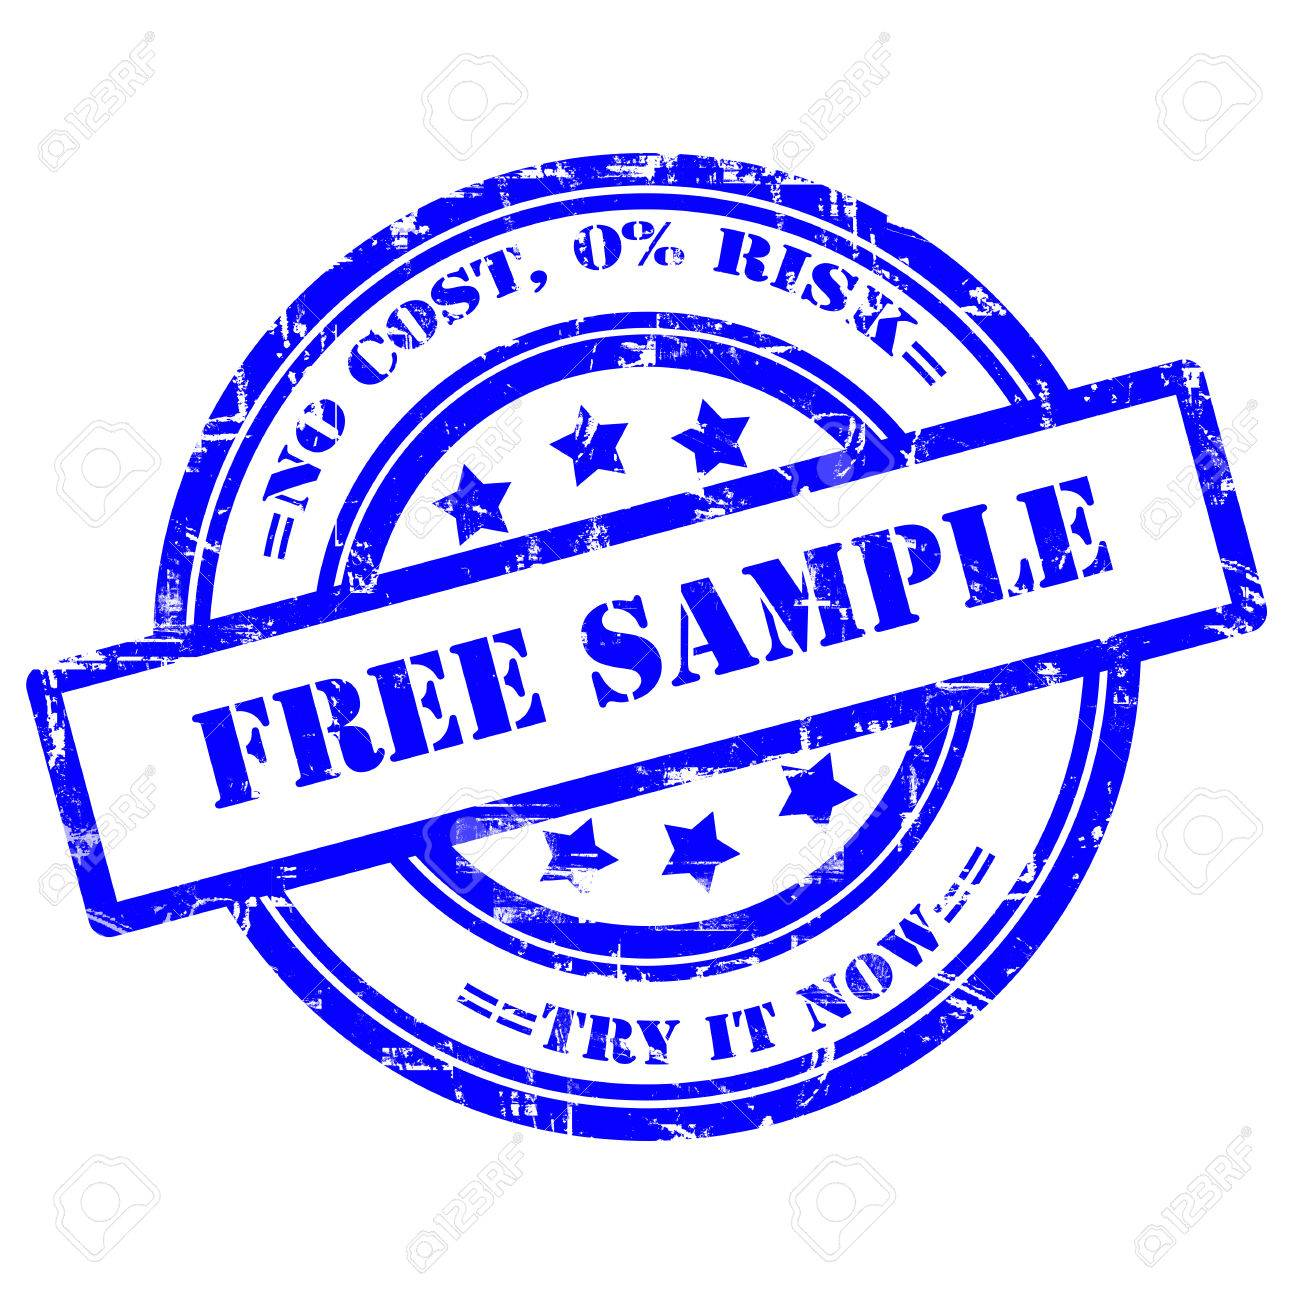 Free Sample, Try It Now. Rubber Stamp, Grunge, Isolated On White ...